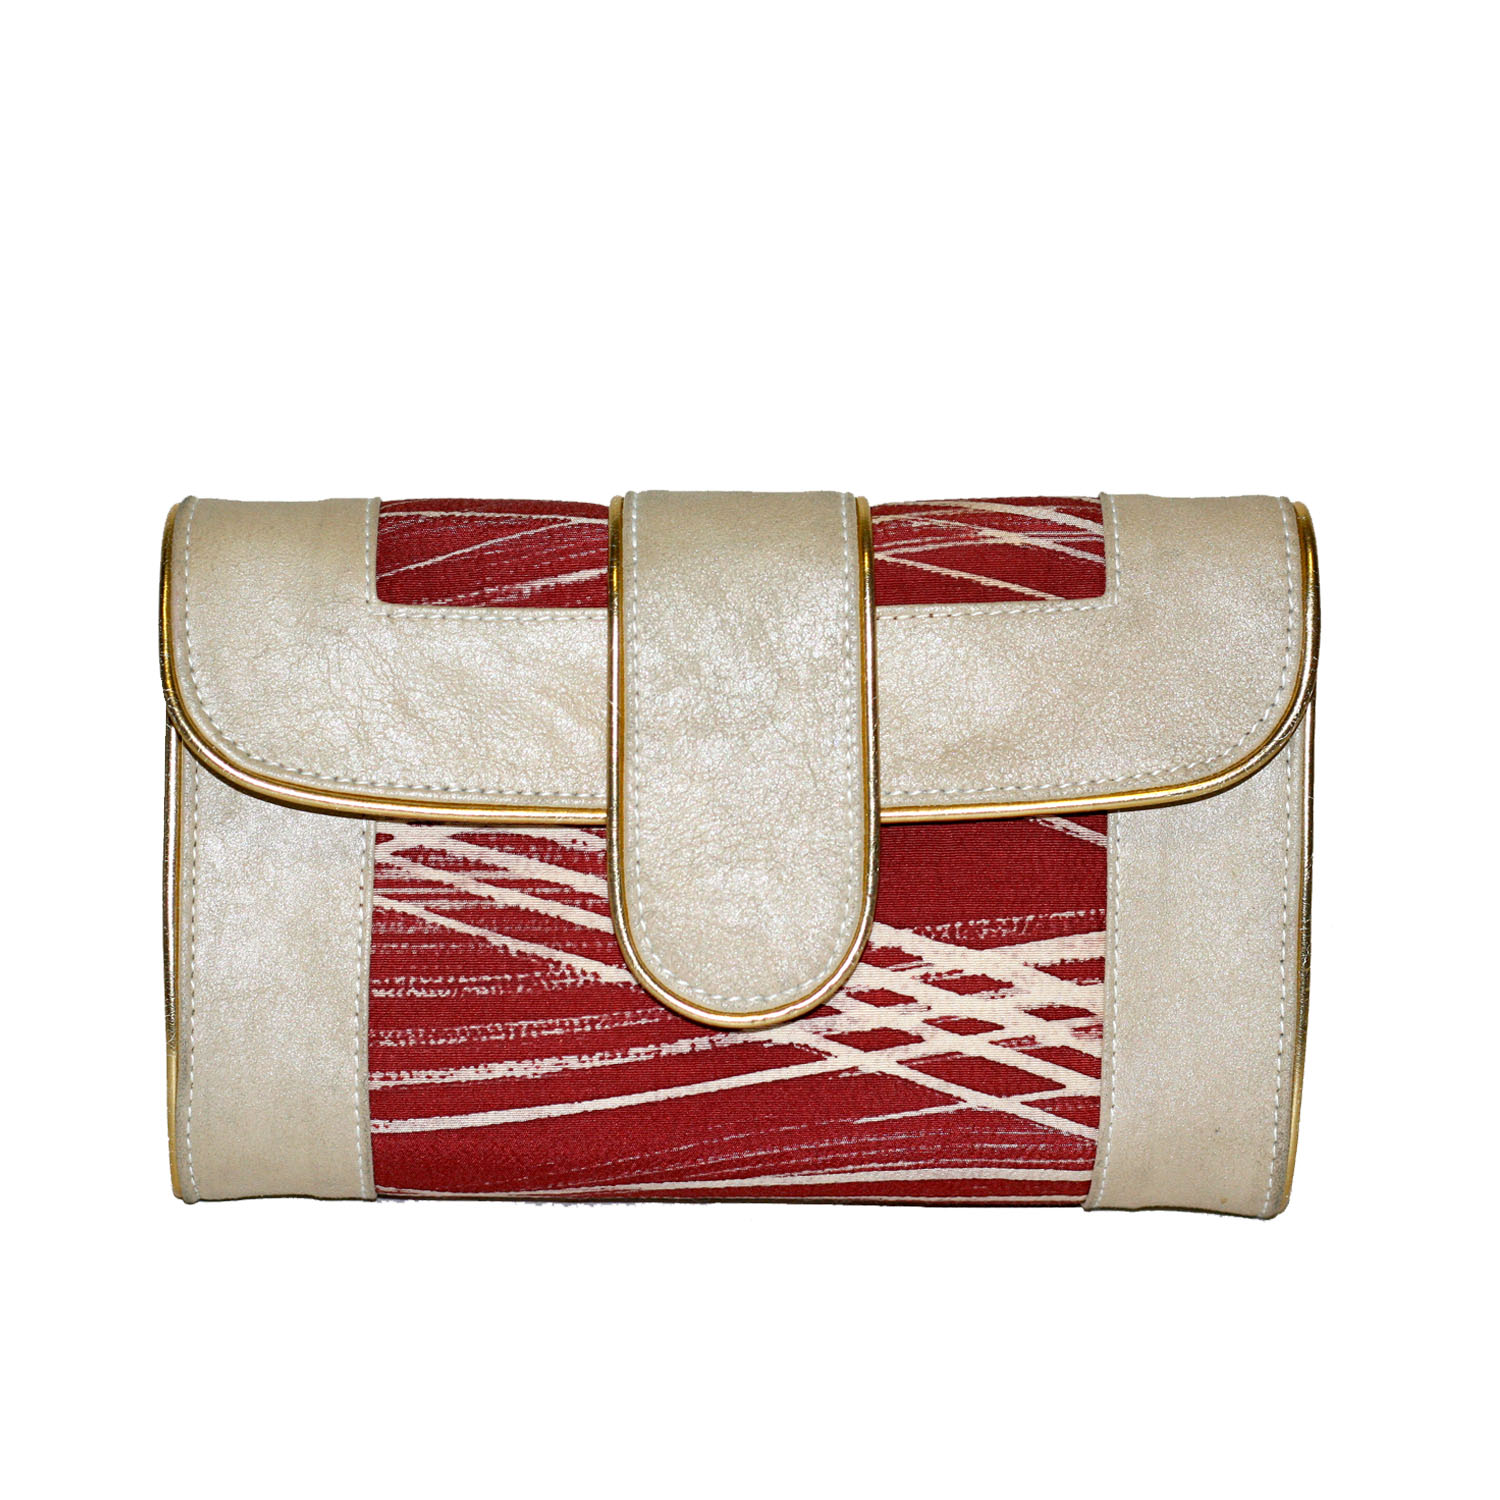 off white and burgundy clutch/crossbody